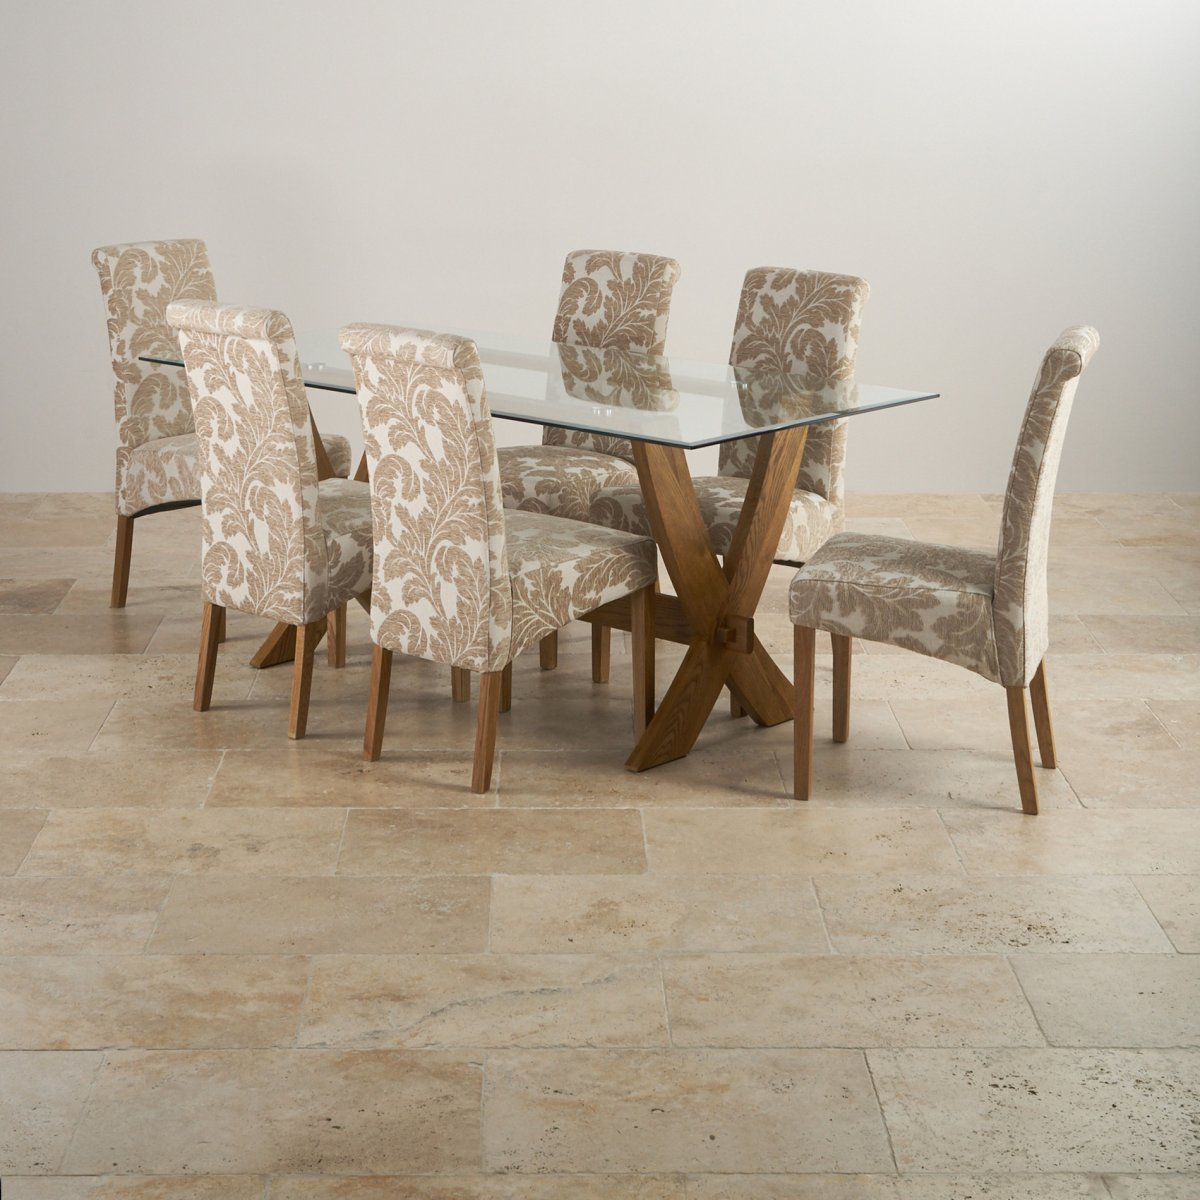 Reflection Rustic Oak Dining Table 6 Patterned Chairs